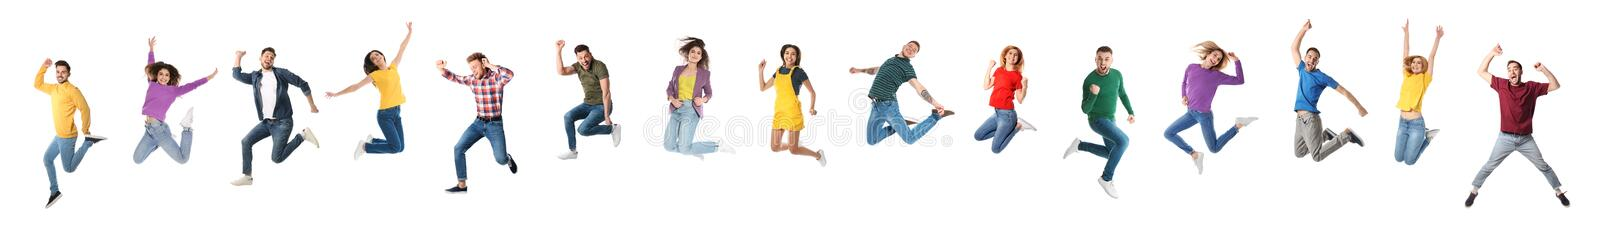 Collage of emotional people jumping on white. Banner design stock photo